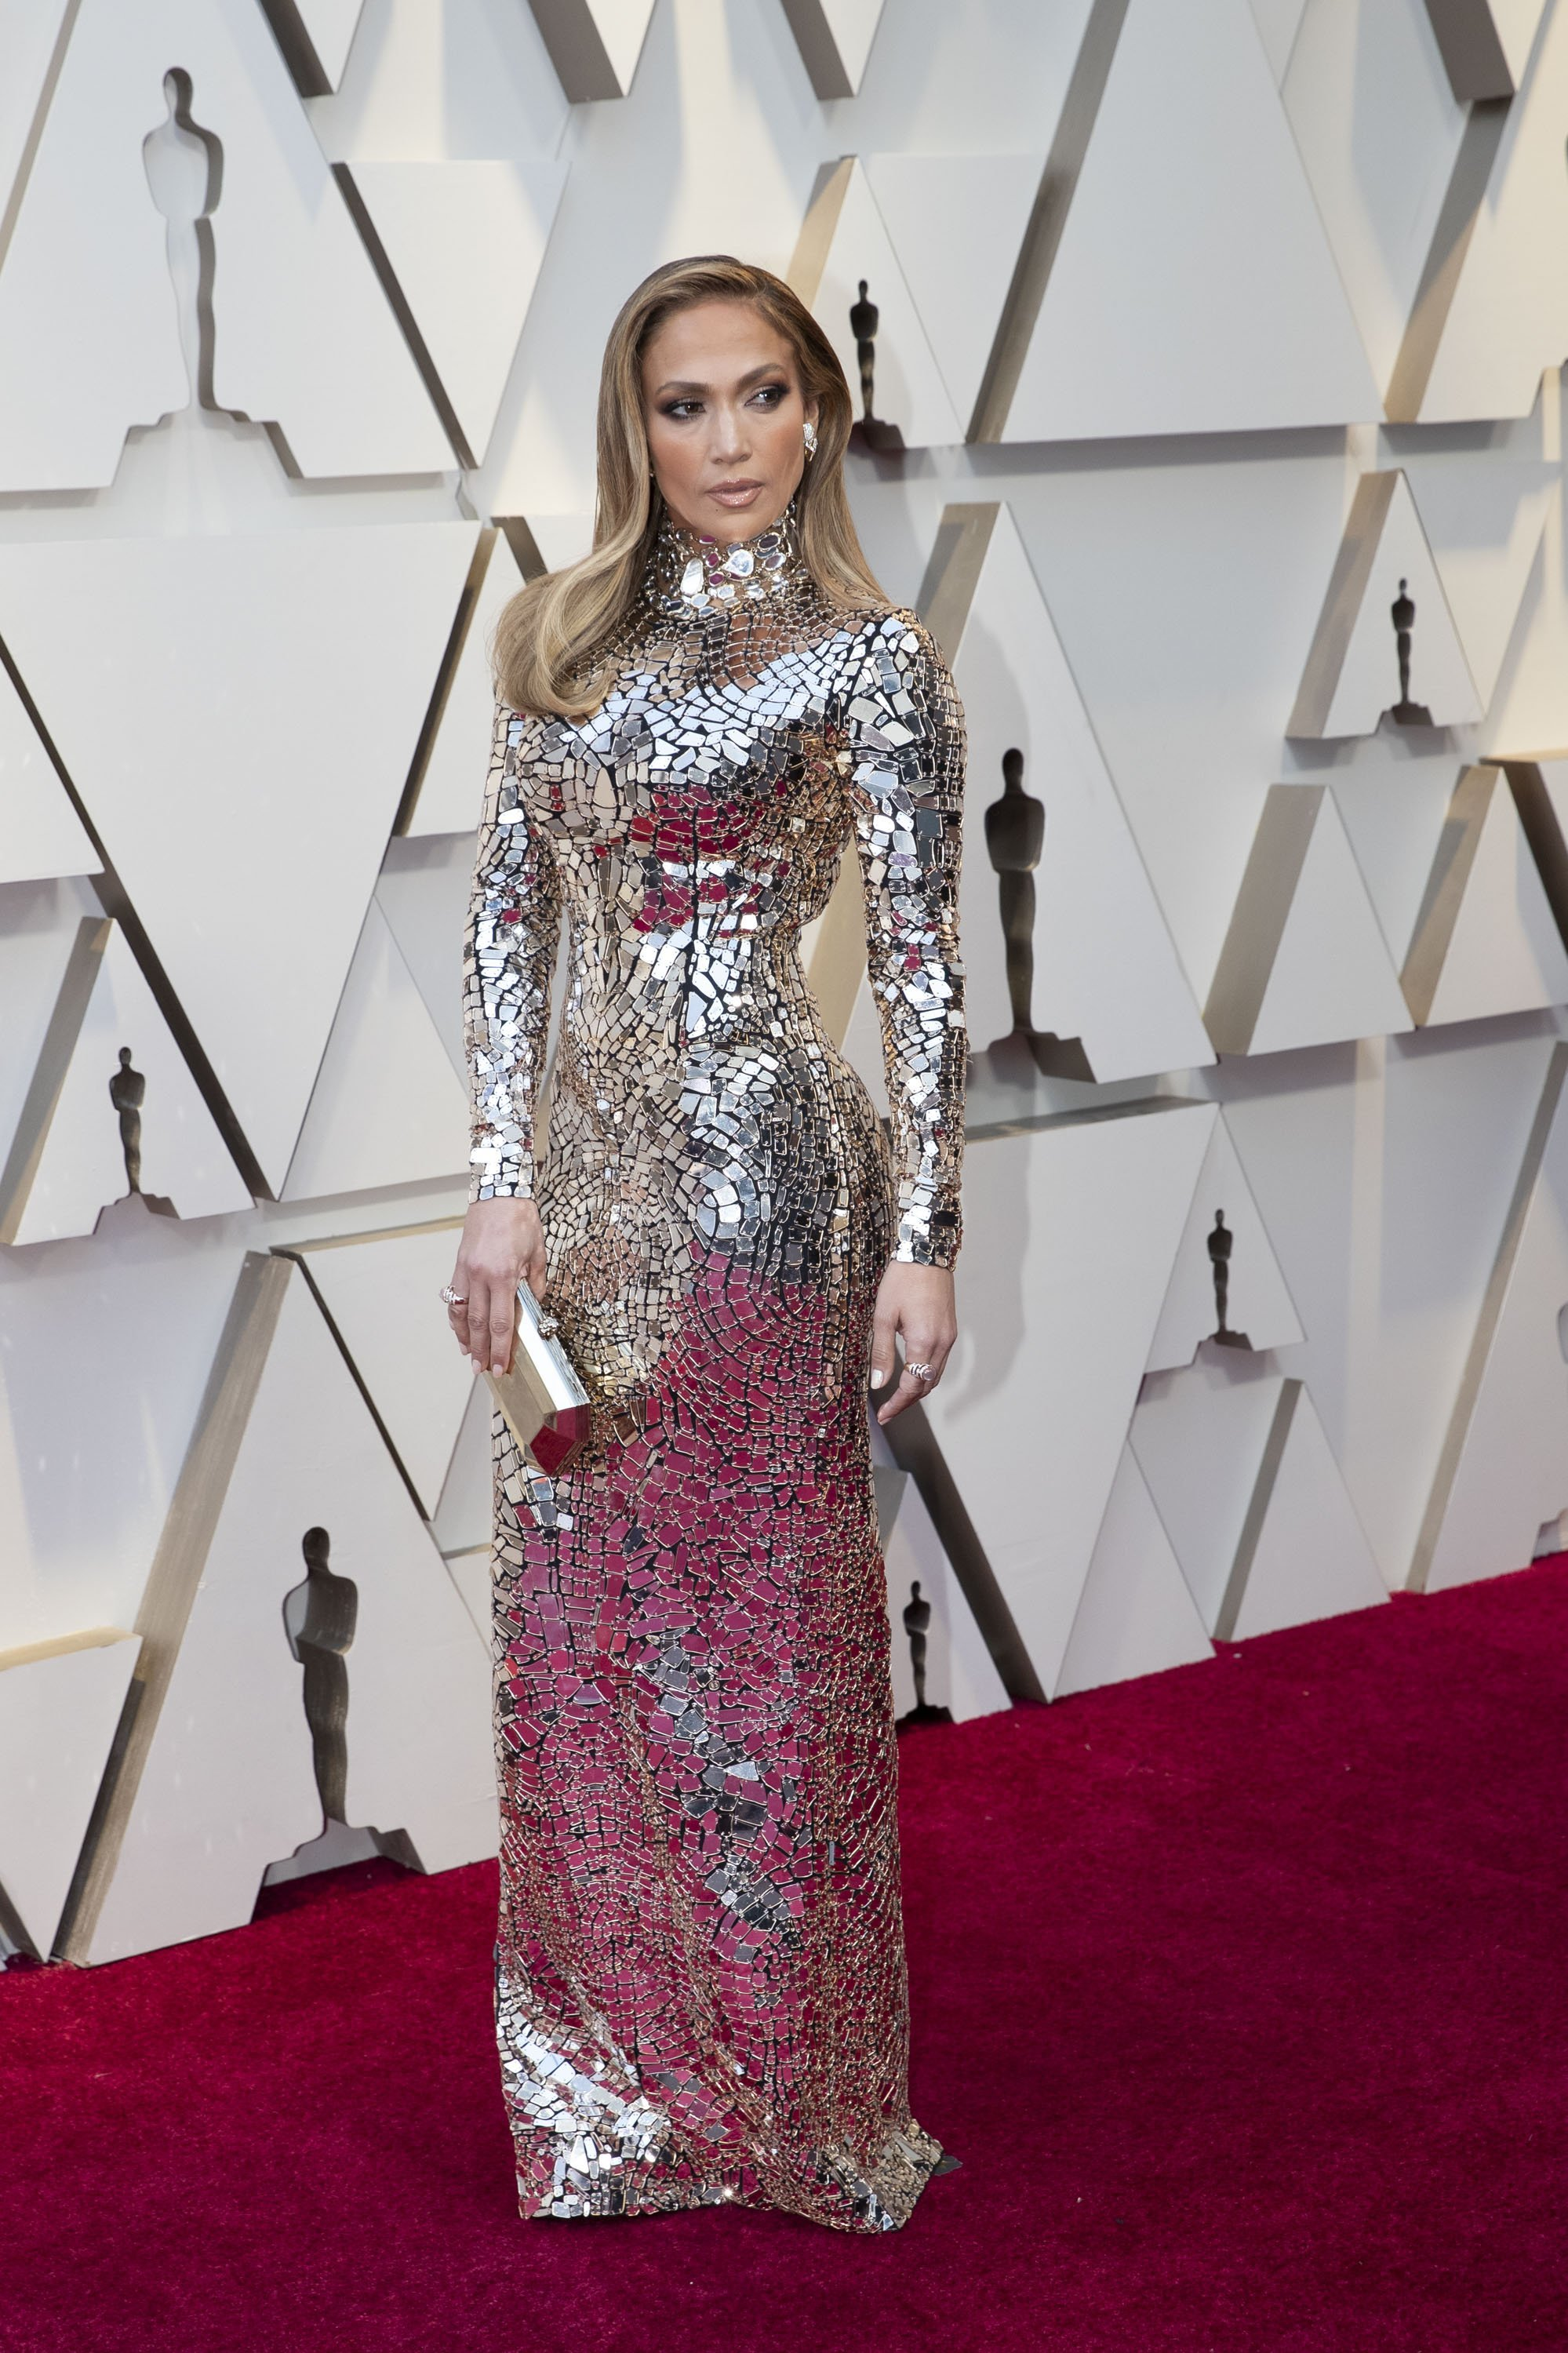 Jennifer Lopez: Red Carpet from the The 91st Oscar broadcast on Sunday, Feb. 24, 2019, at the Dolby Theatre.